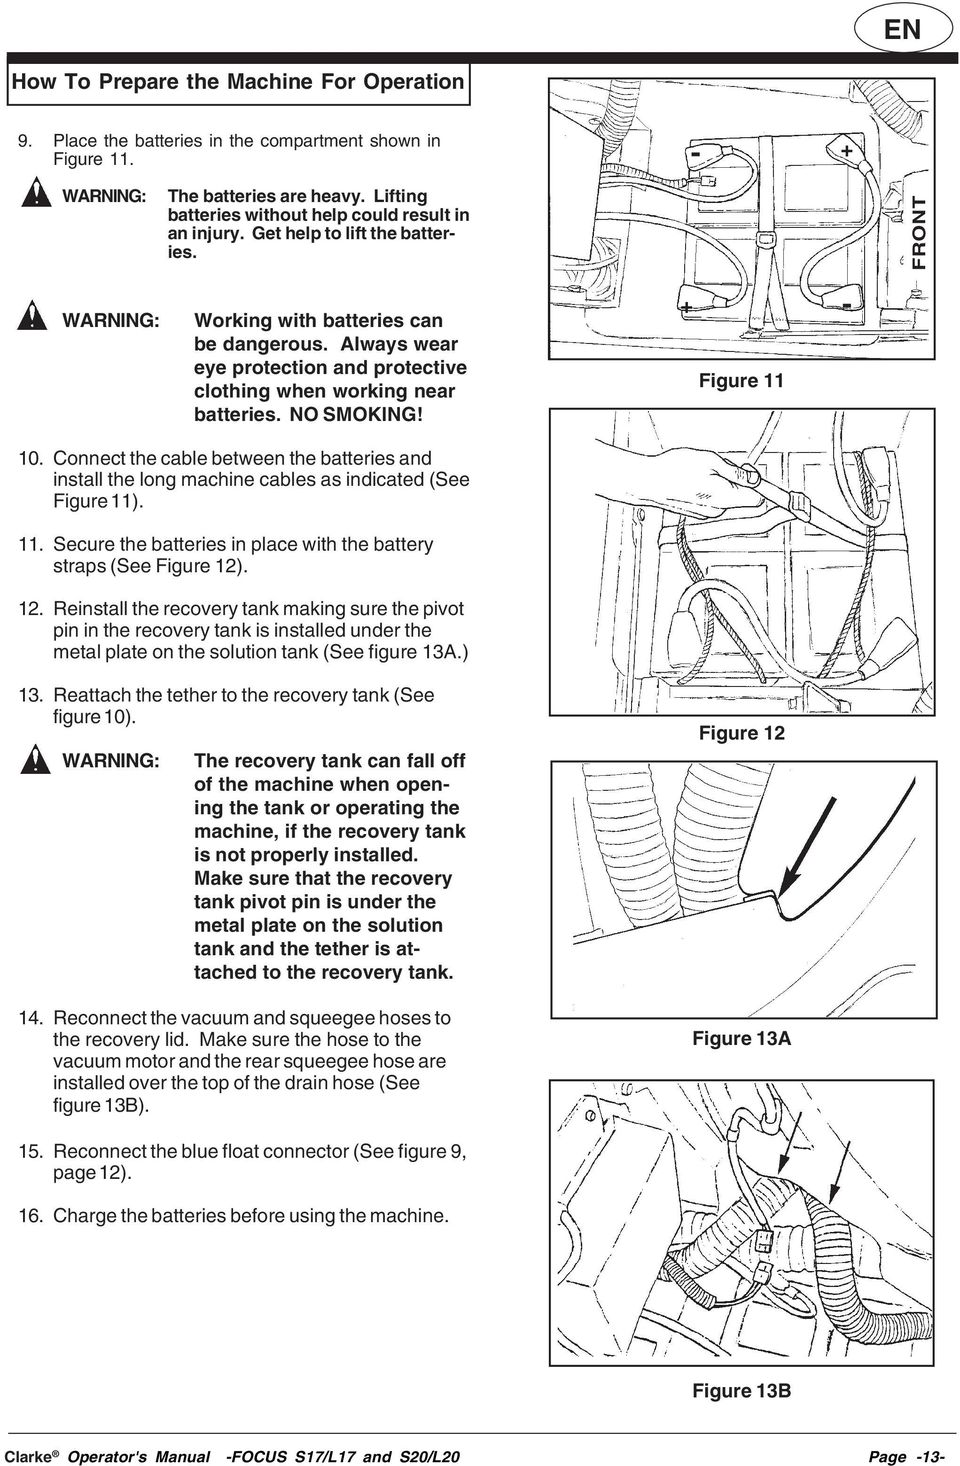 Always wear eye protection and protective clothing when working near batteries. NO SMOKING! + Figure 11-10.